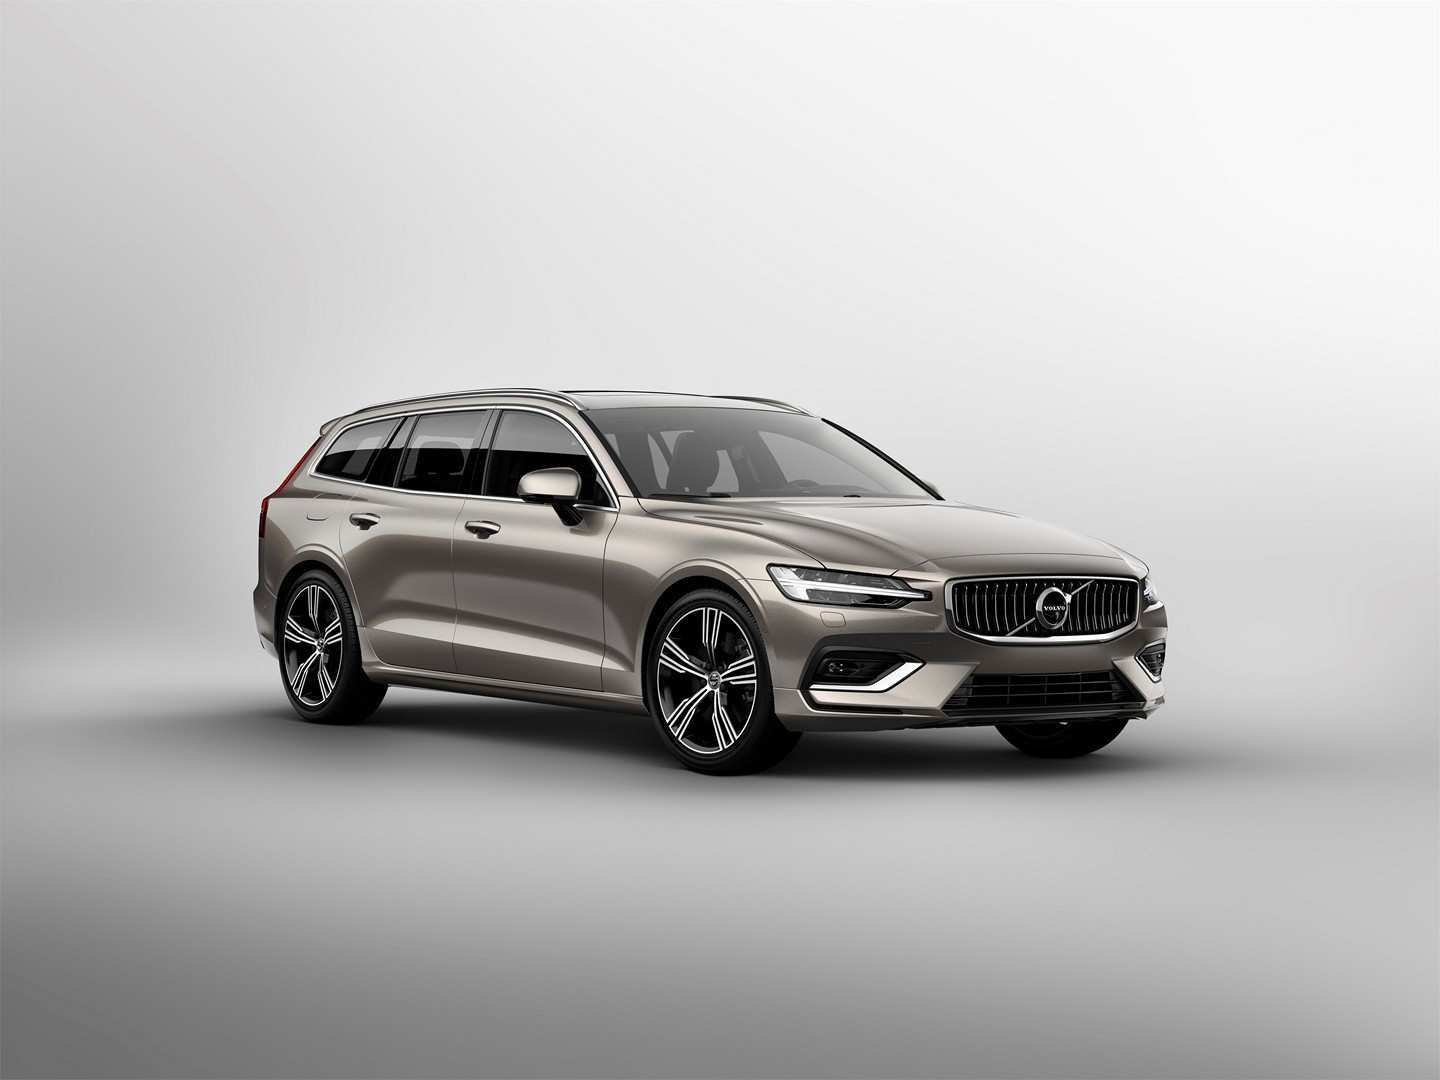 65 All New Volvo Phev 2019 Research New for Volvo Phev 2019